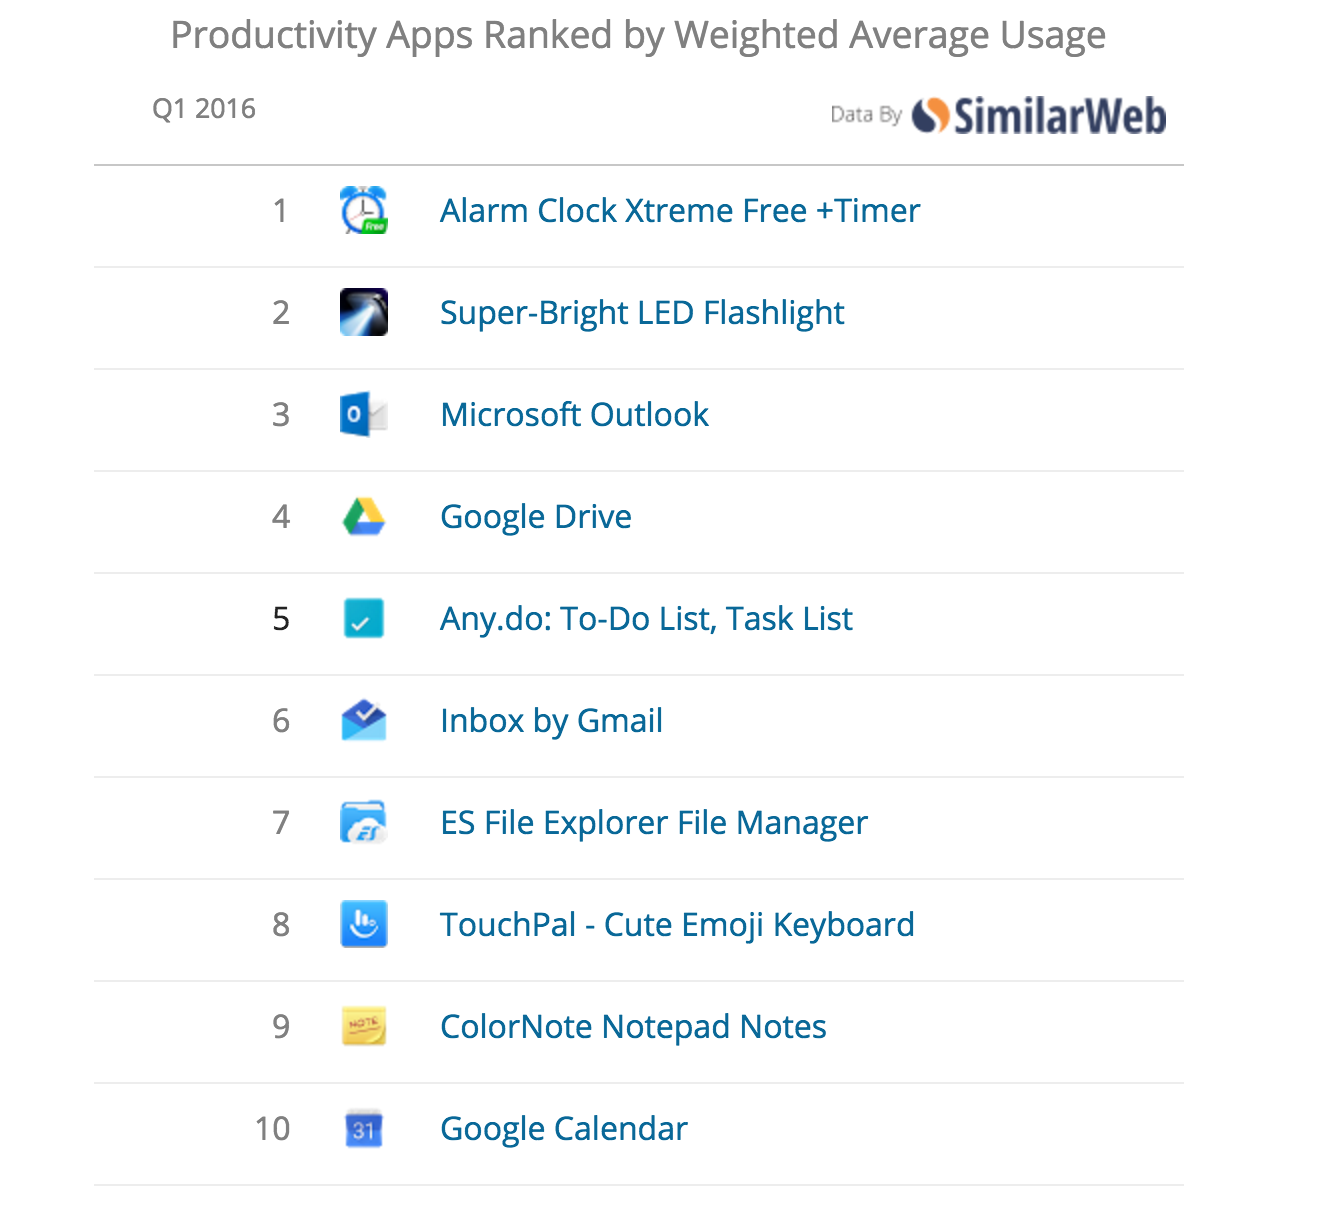 Productivity Apps Usage Ranking